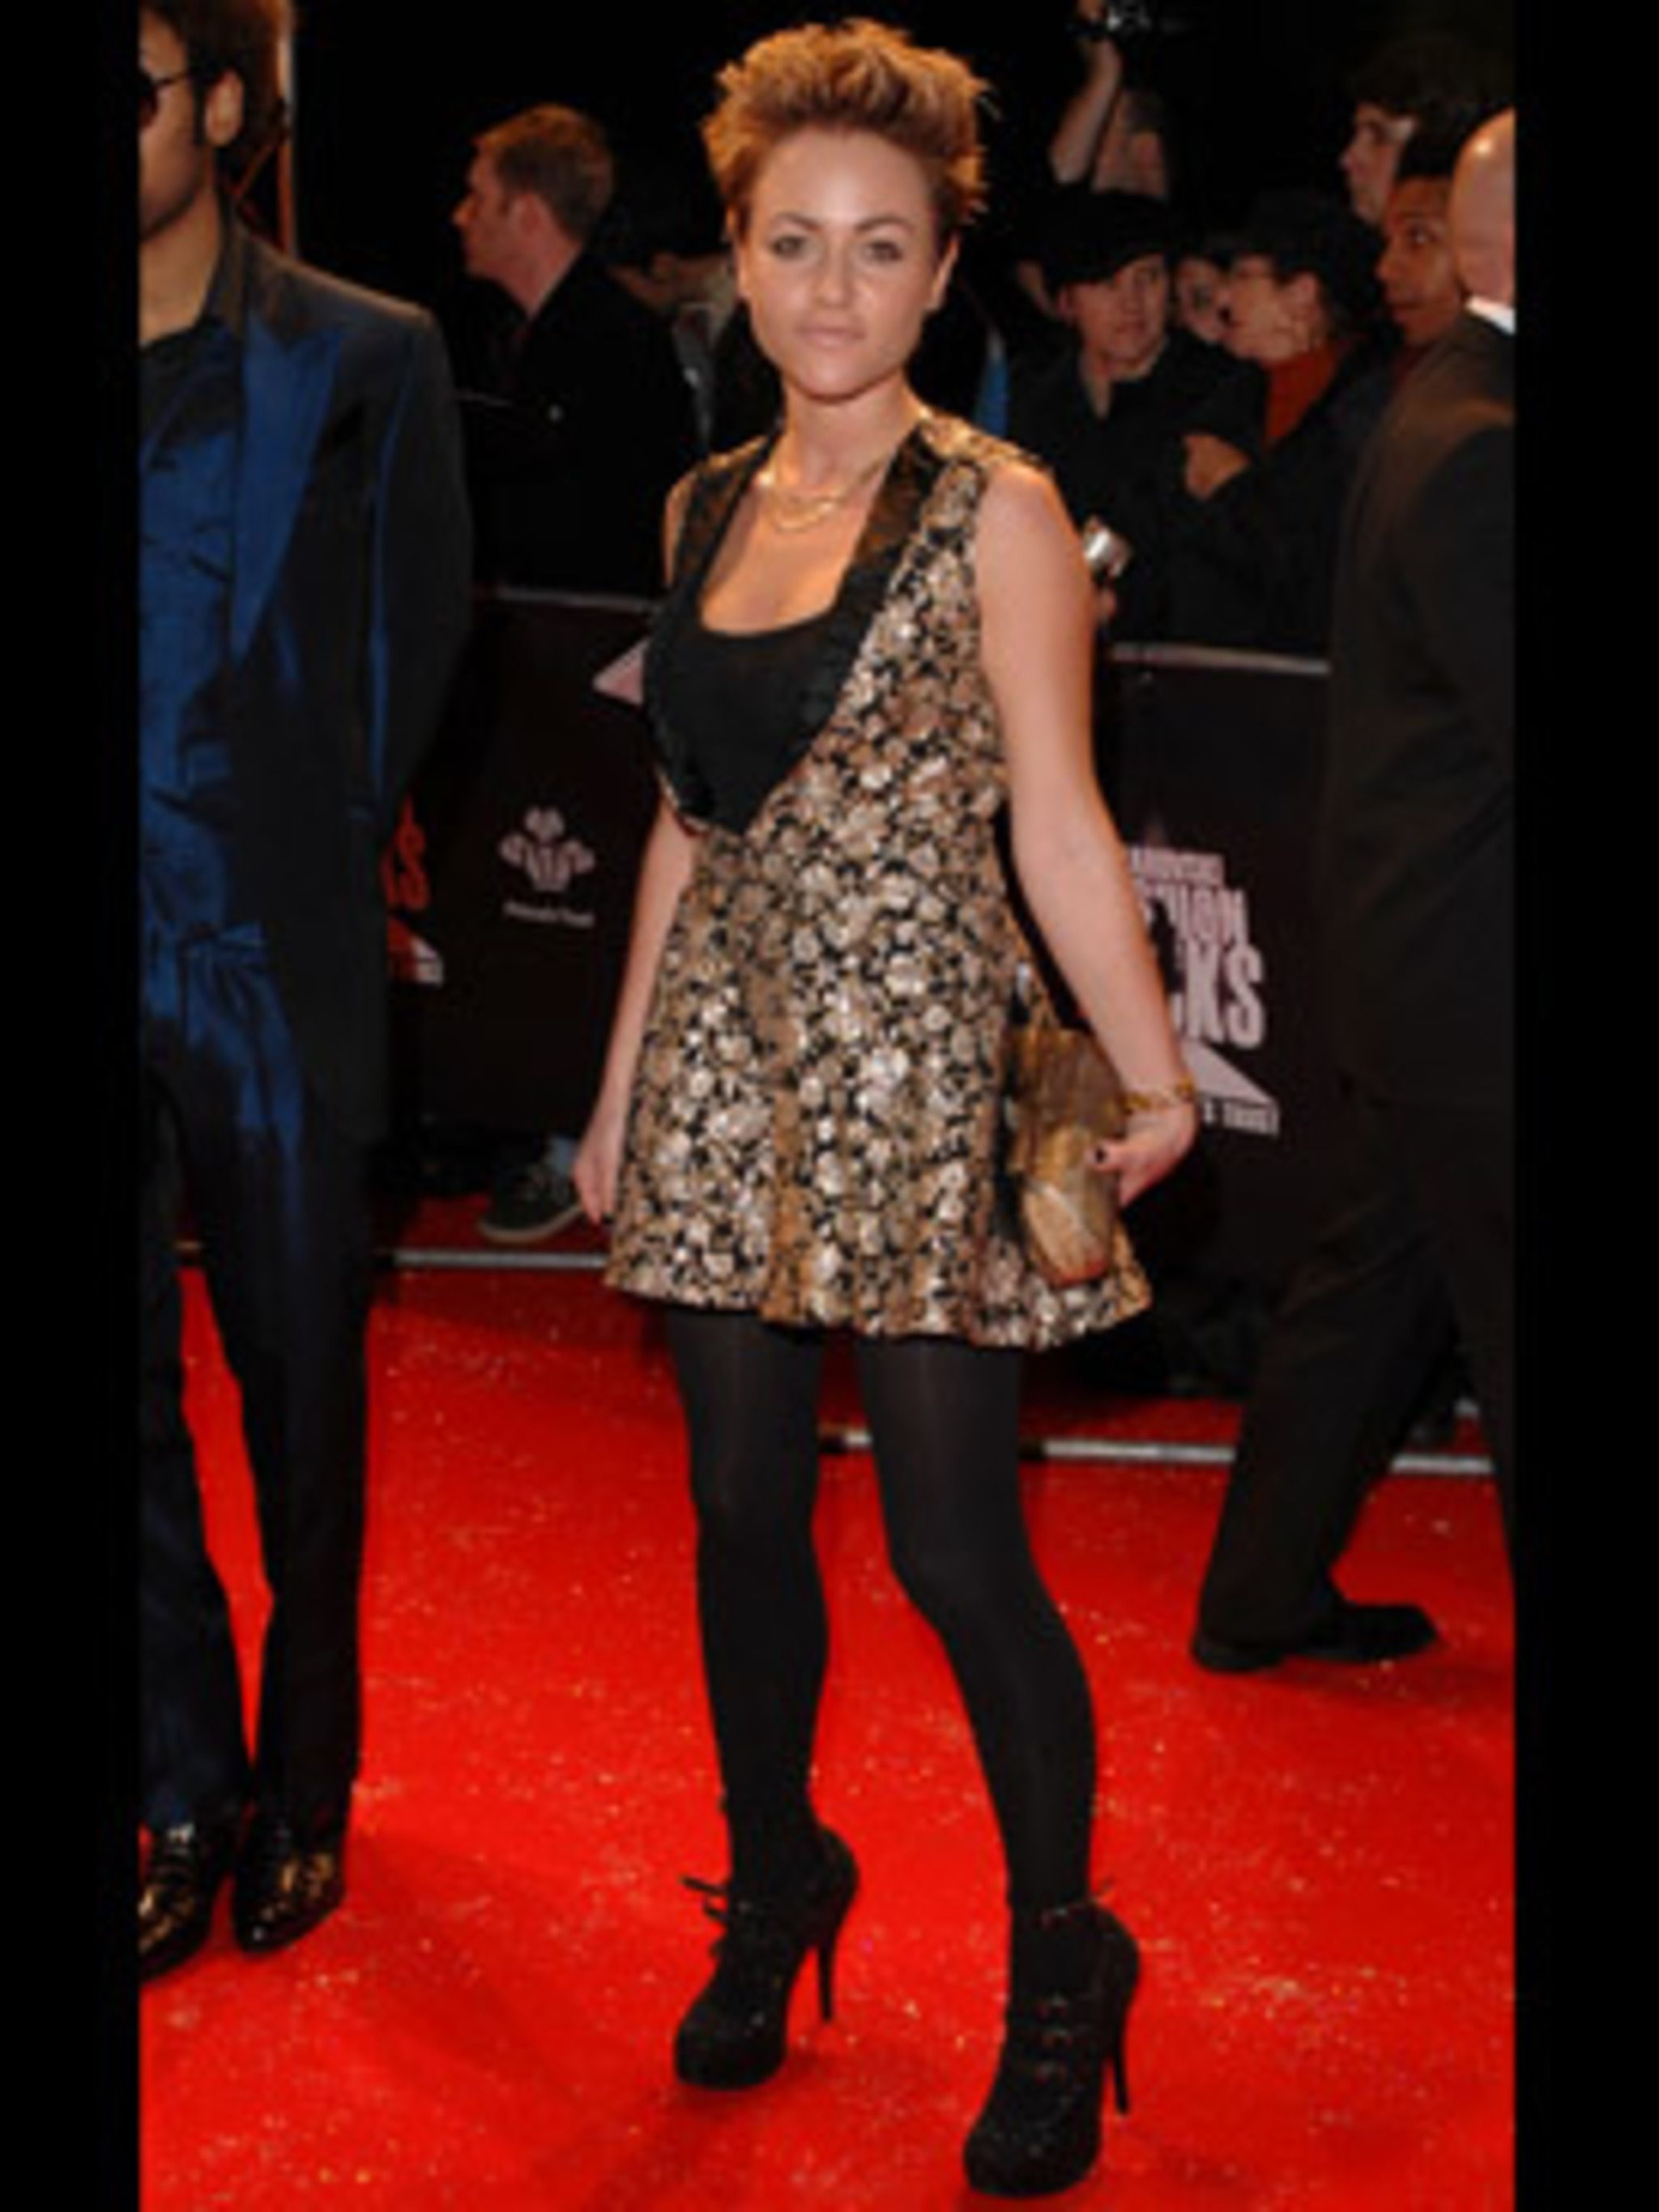 <p>Jaime cleverly teams her 'look at me' heels with opaques - magically lengthening her legs</p>